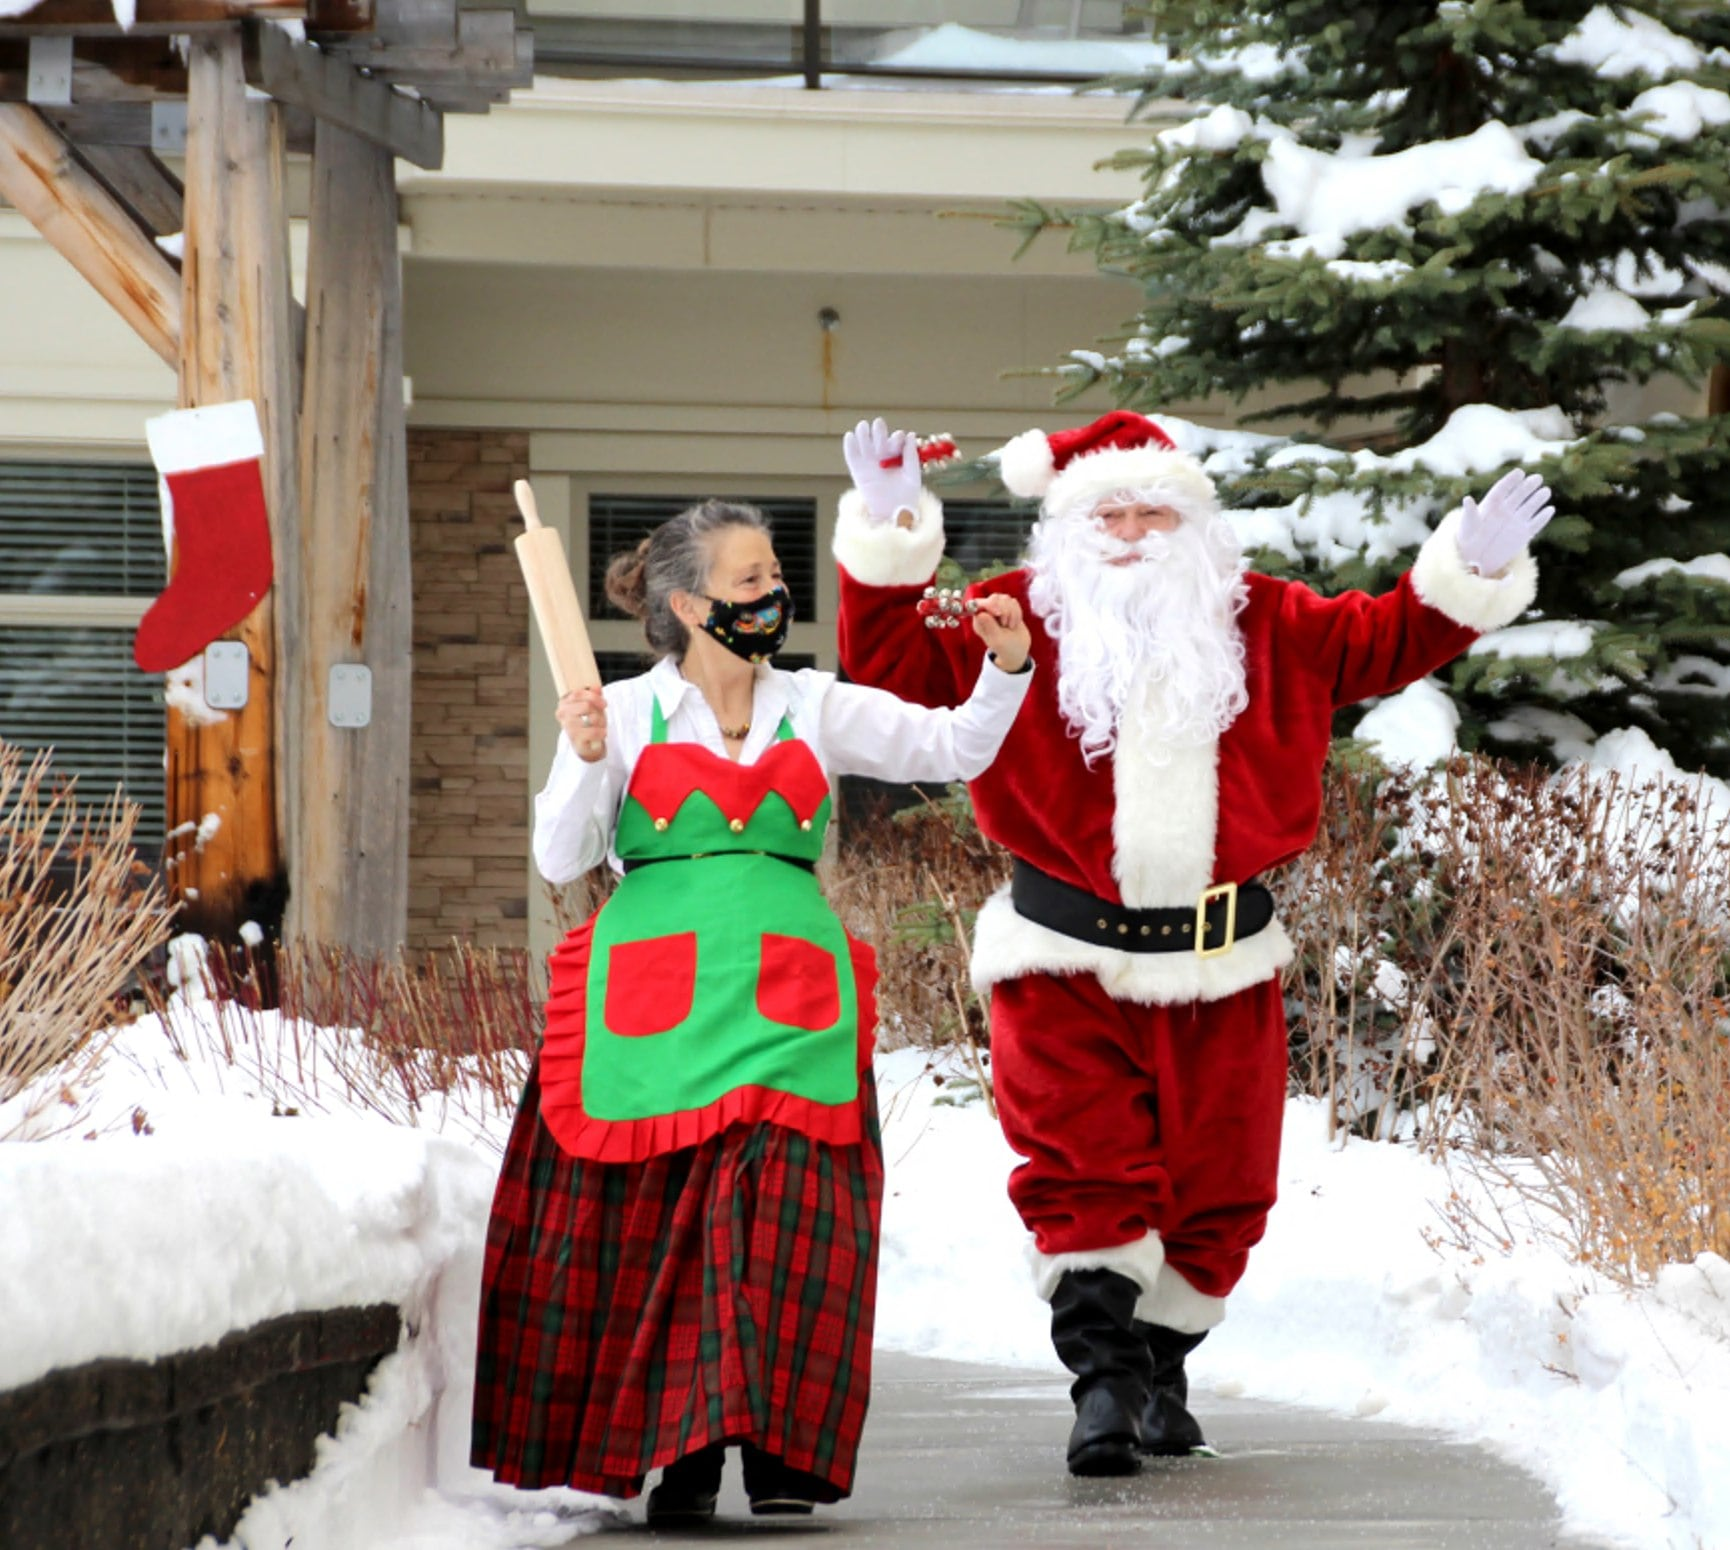 Santa and Mrs. Claus spread holiday cheer